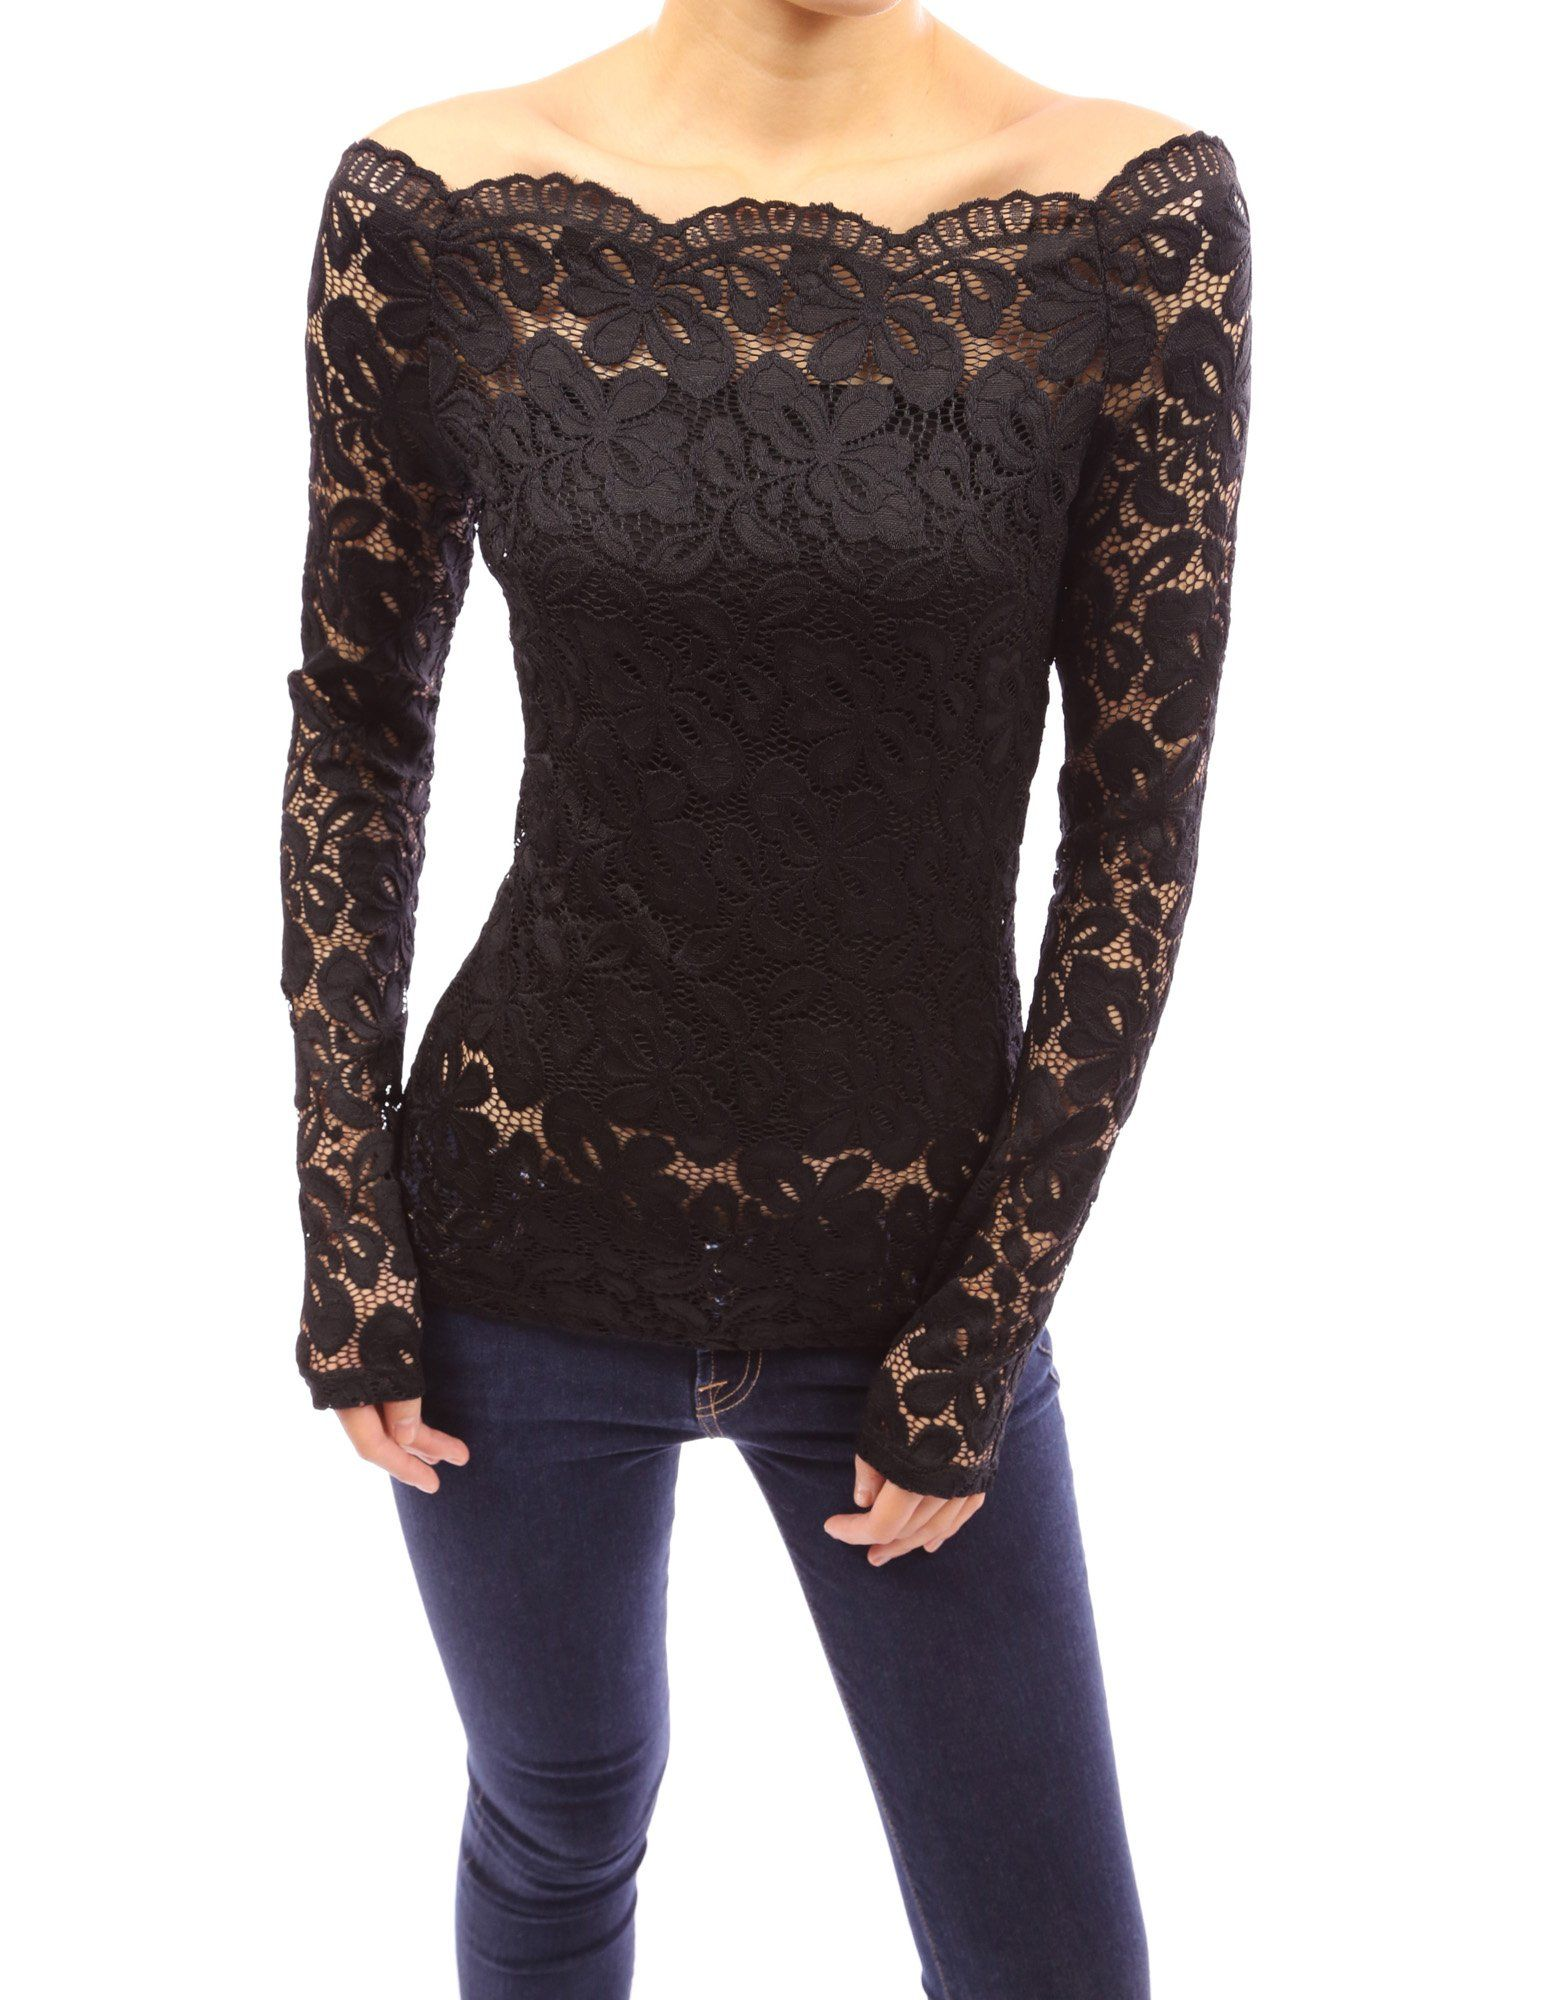 8946674d572 $39.99 PattyBoutik Floral Lace Scallop Off Shoulder Long Sleeve Fitted  Sheer Blouse Top at Amazon Women's Clothing store: